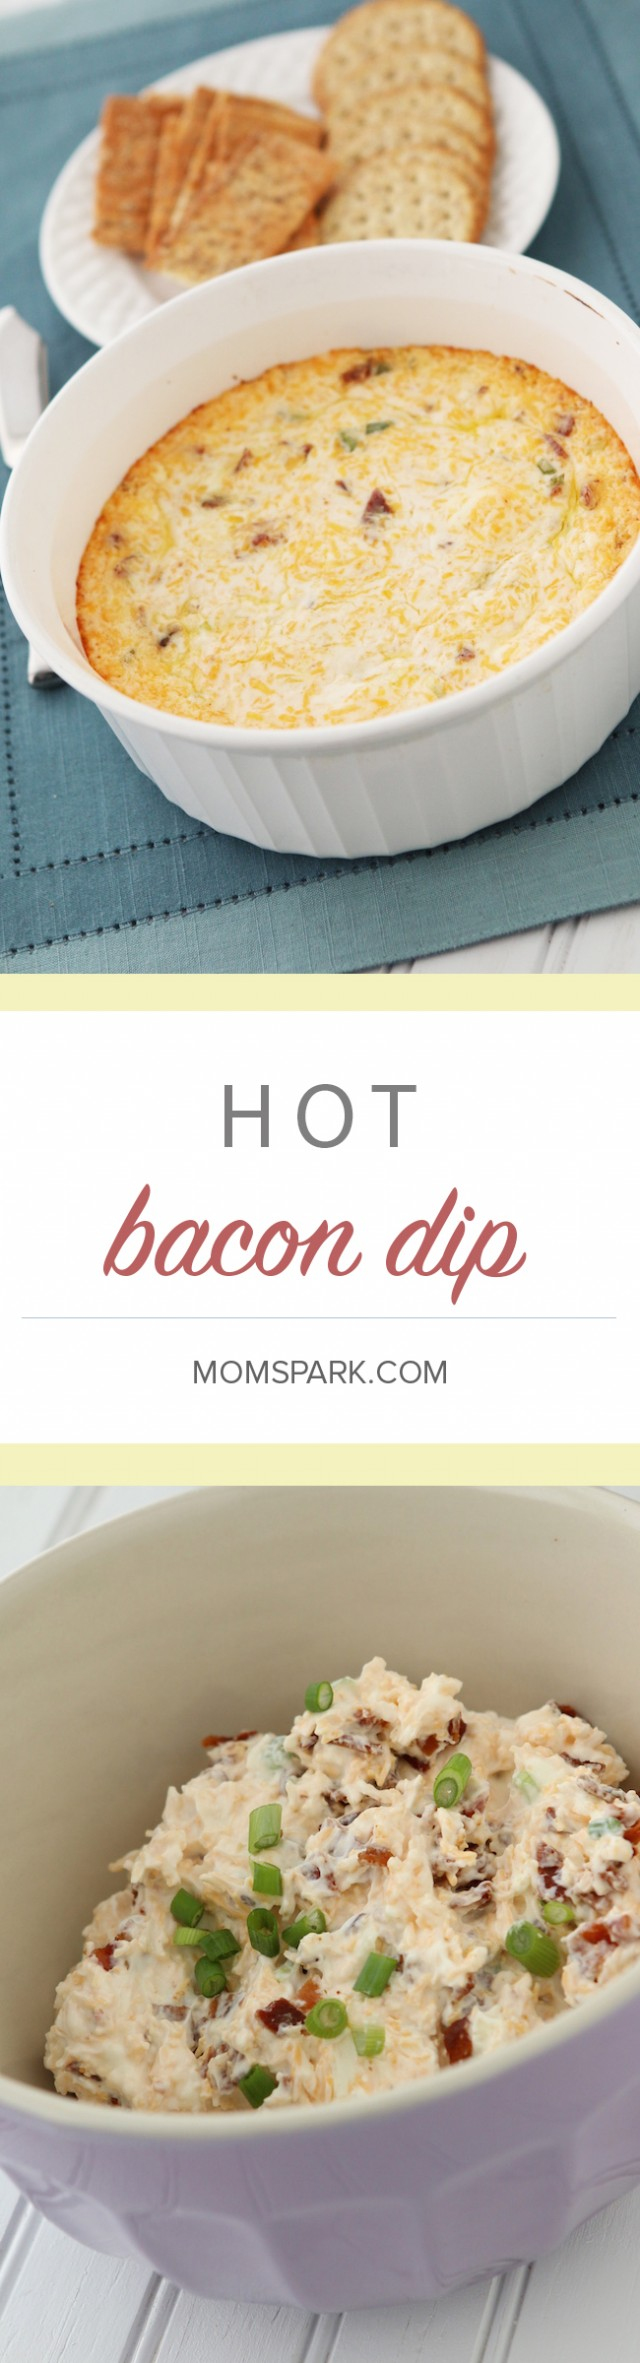 Hot Bacon Dip Recipe - Perfect for Game Day